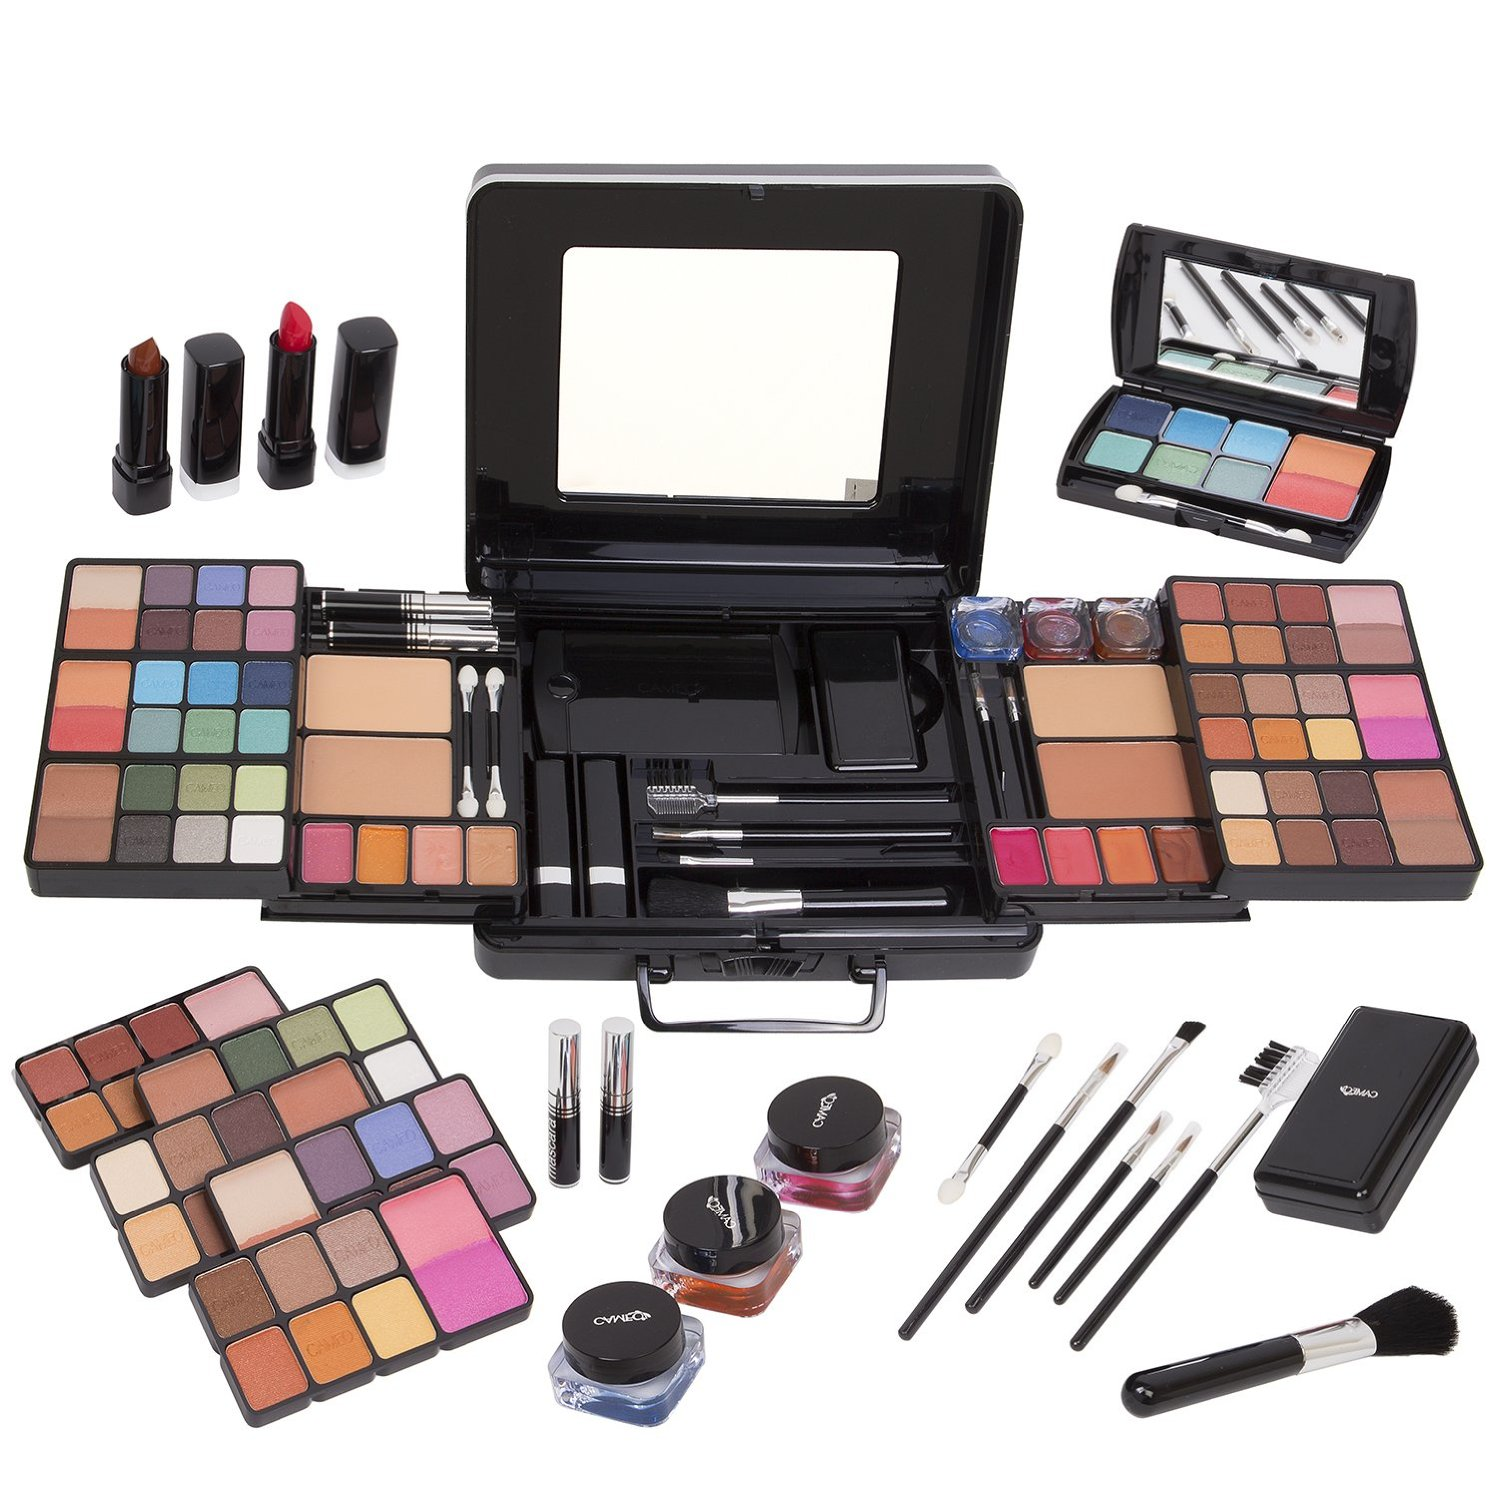 CAMEO 999 Cameo Color Take Outs Make up Kit